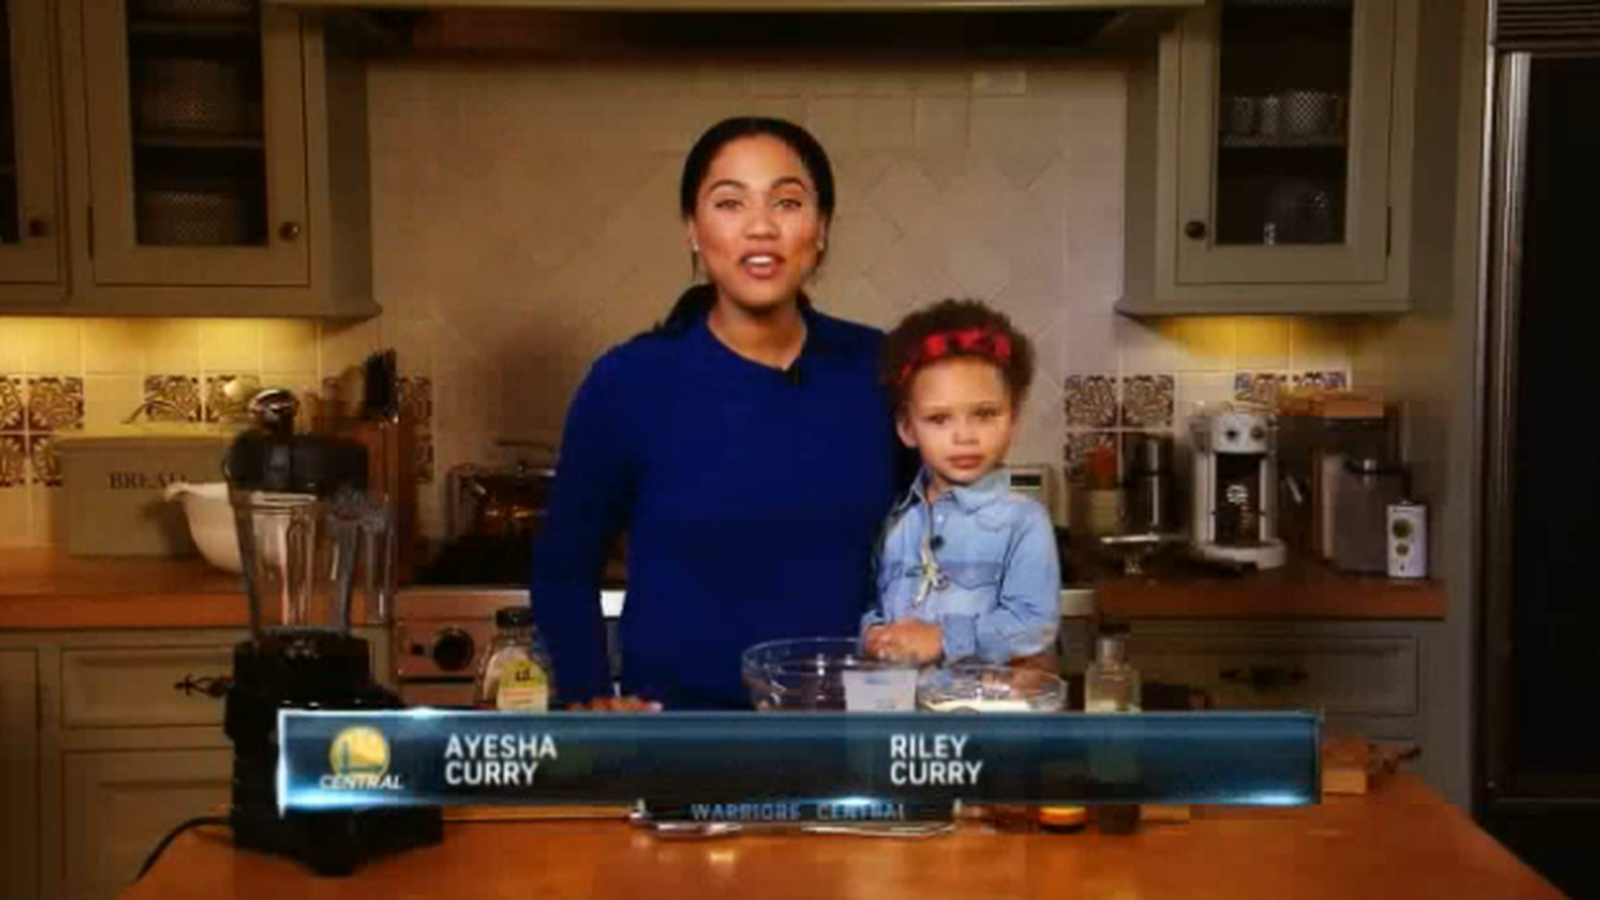 Riley Curry stars in Ayesha Curry's cooking show